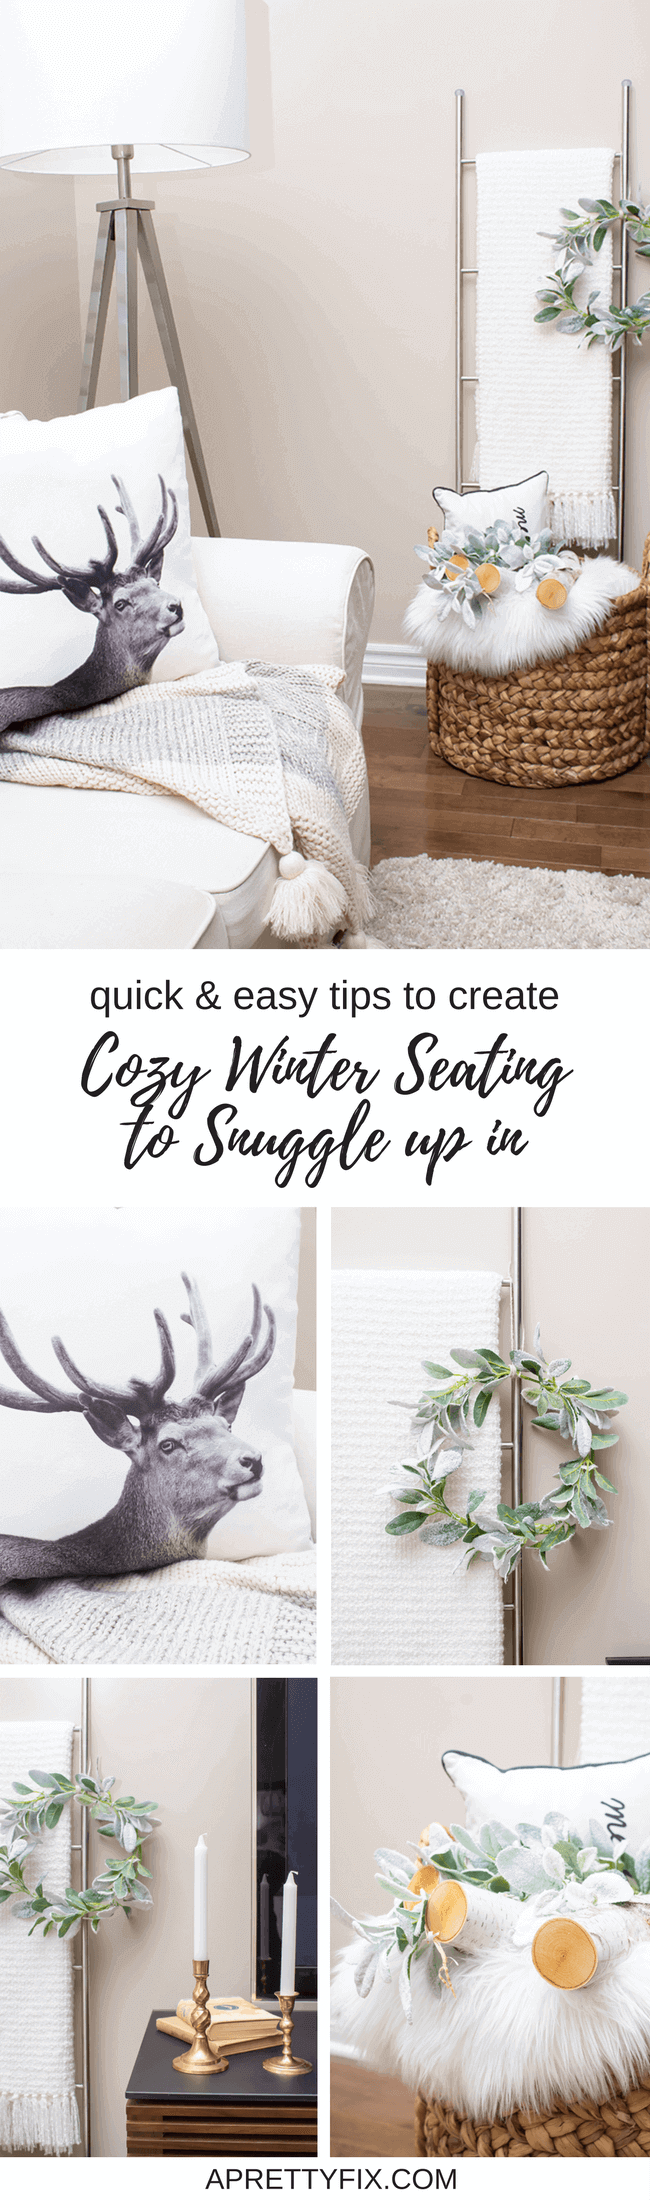 Using basic accessories and a few DIY elements, creating a cozy winter seating nook to snuggle up in is easy. Get inspiration and a few quick and easy tips on creating your own cozy spot this season.